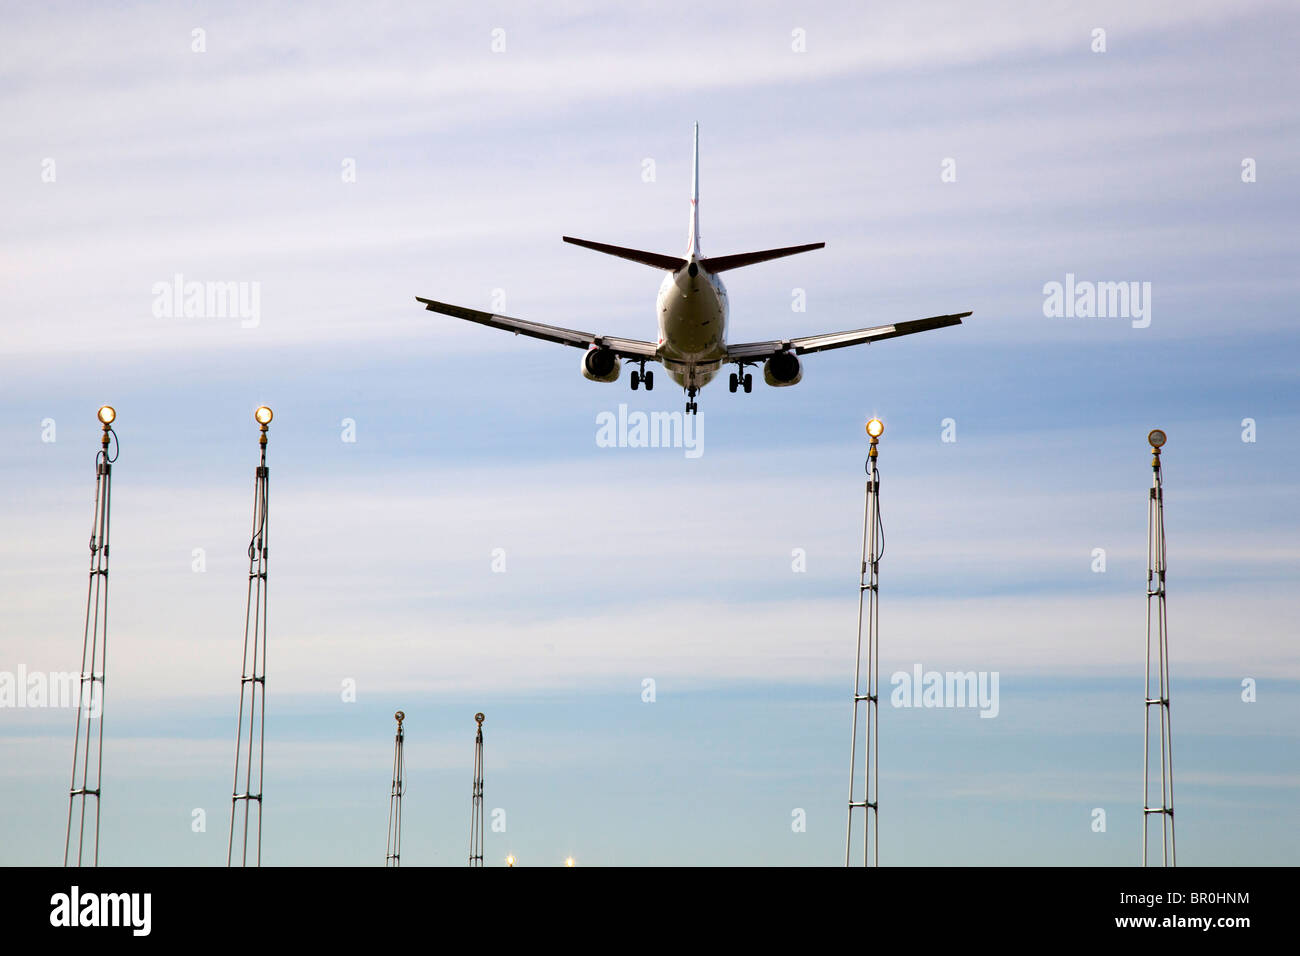 Boeing 737 jet airliner landing at the end of the runway at Manchester airport. - Stock Image